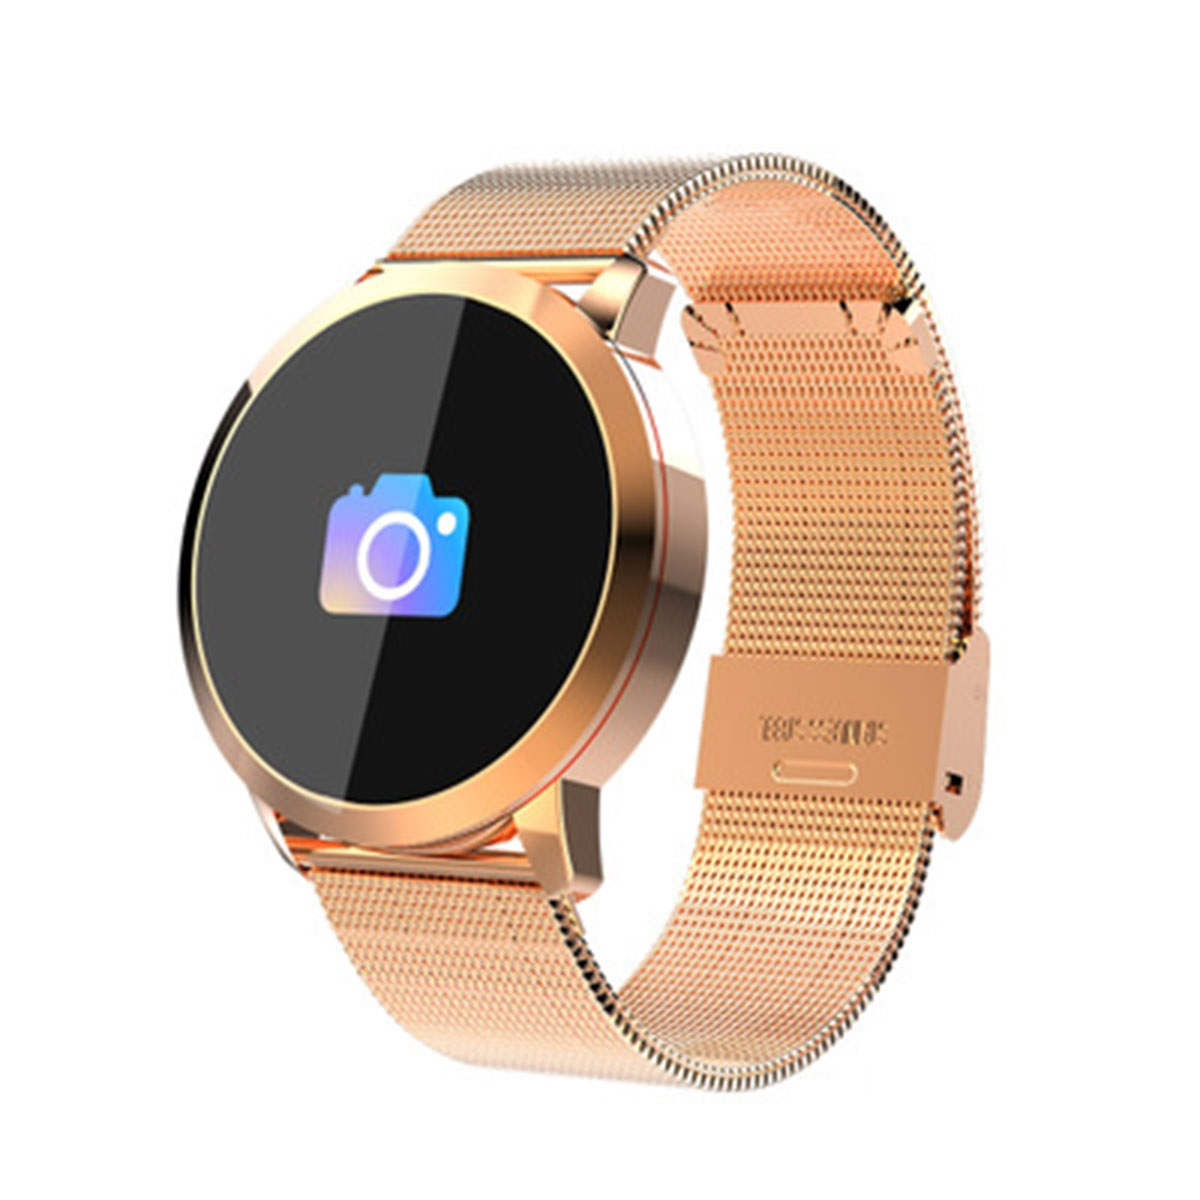 Q8 Smart Watch OLED Color Screen Touch Control Smartwatch Men Women Thin light Fashion Fitness Tracker Heart Rate monitor-in Smart Watches from Consumer Electronics